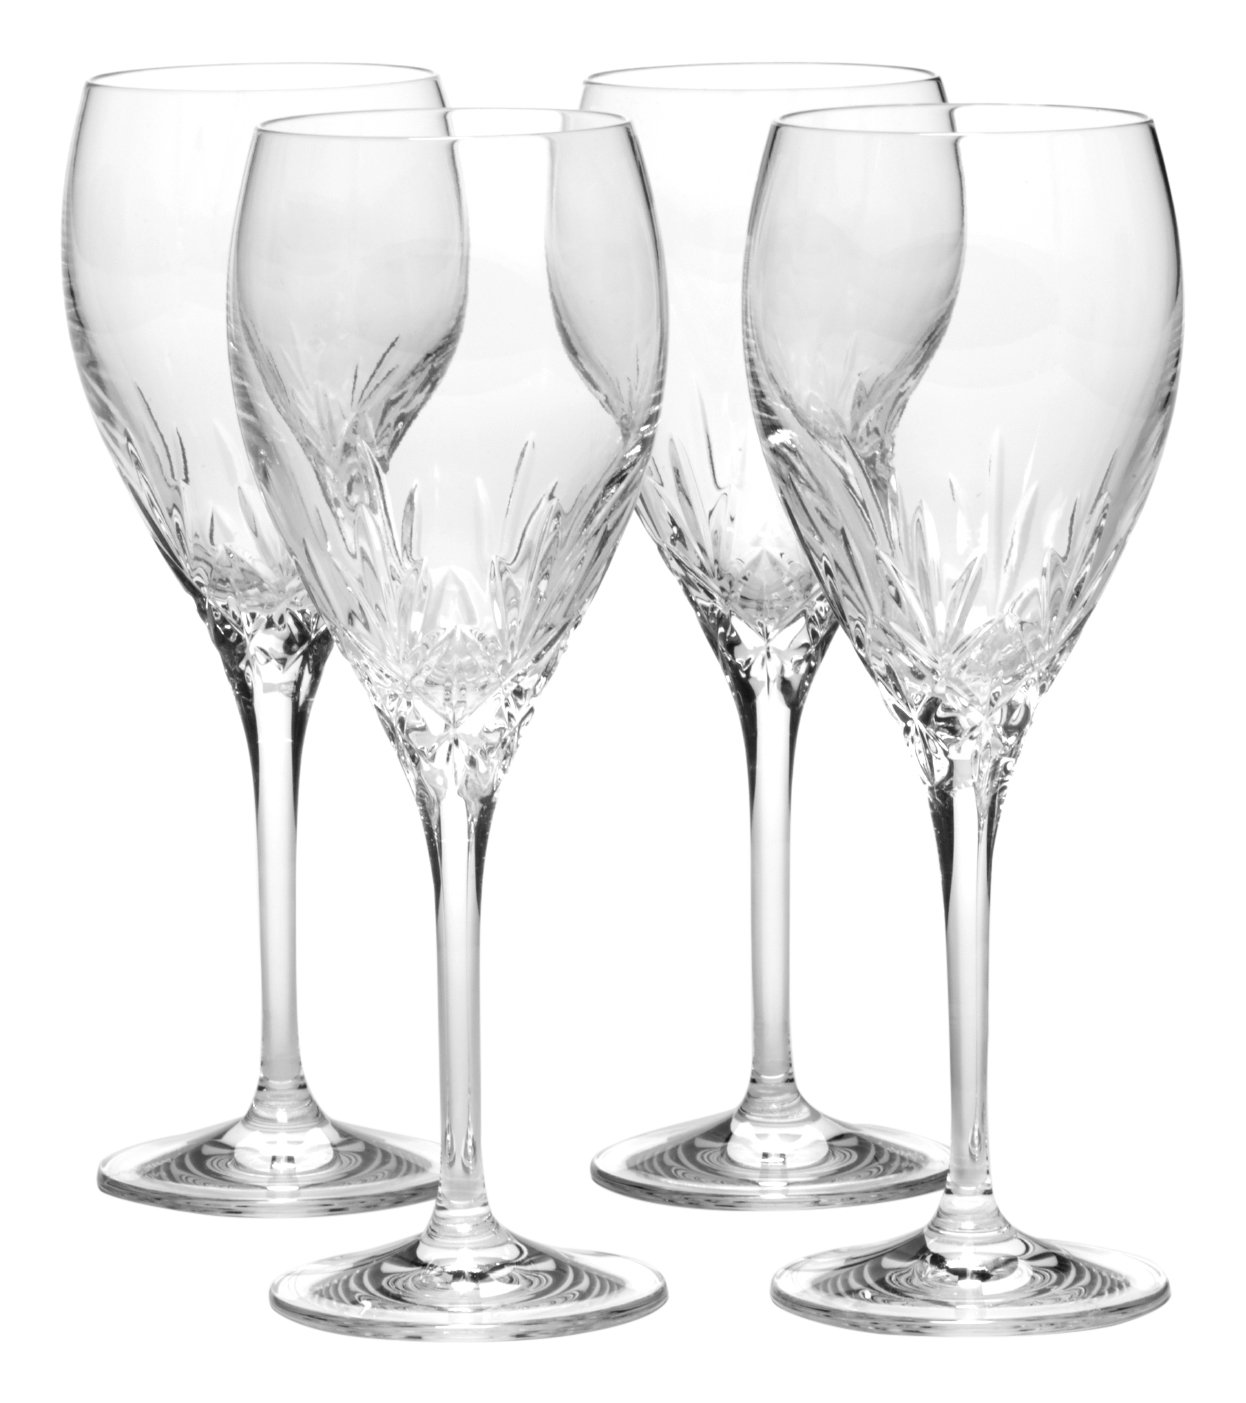 Mikasa Orion Goblet (Set of 4), 10.25 oz, Clear 5123616